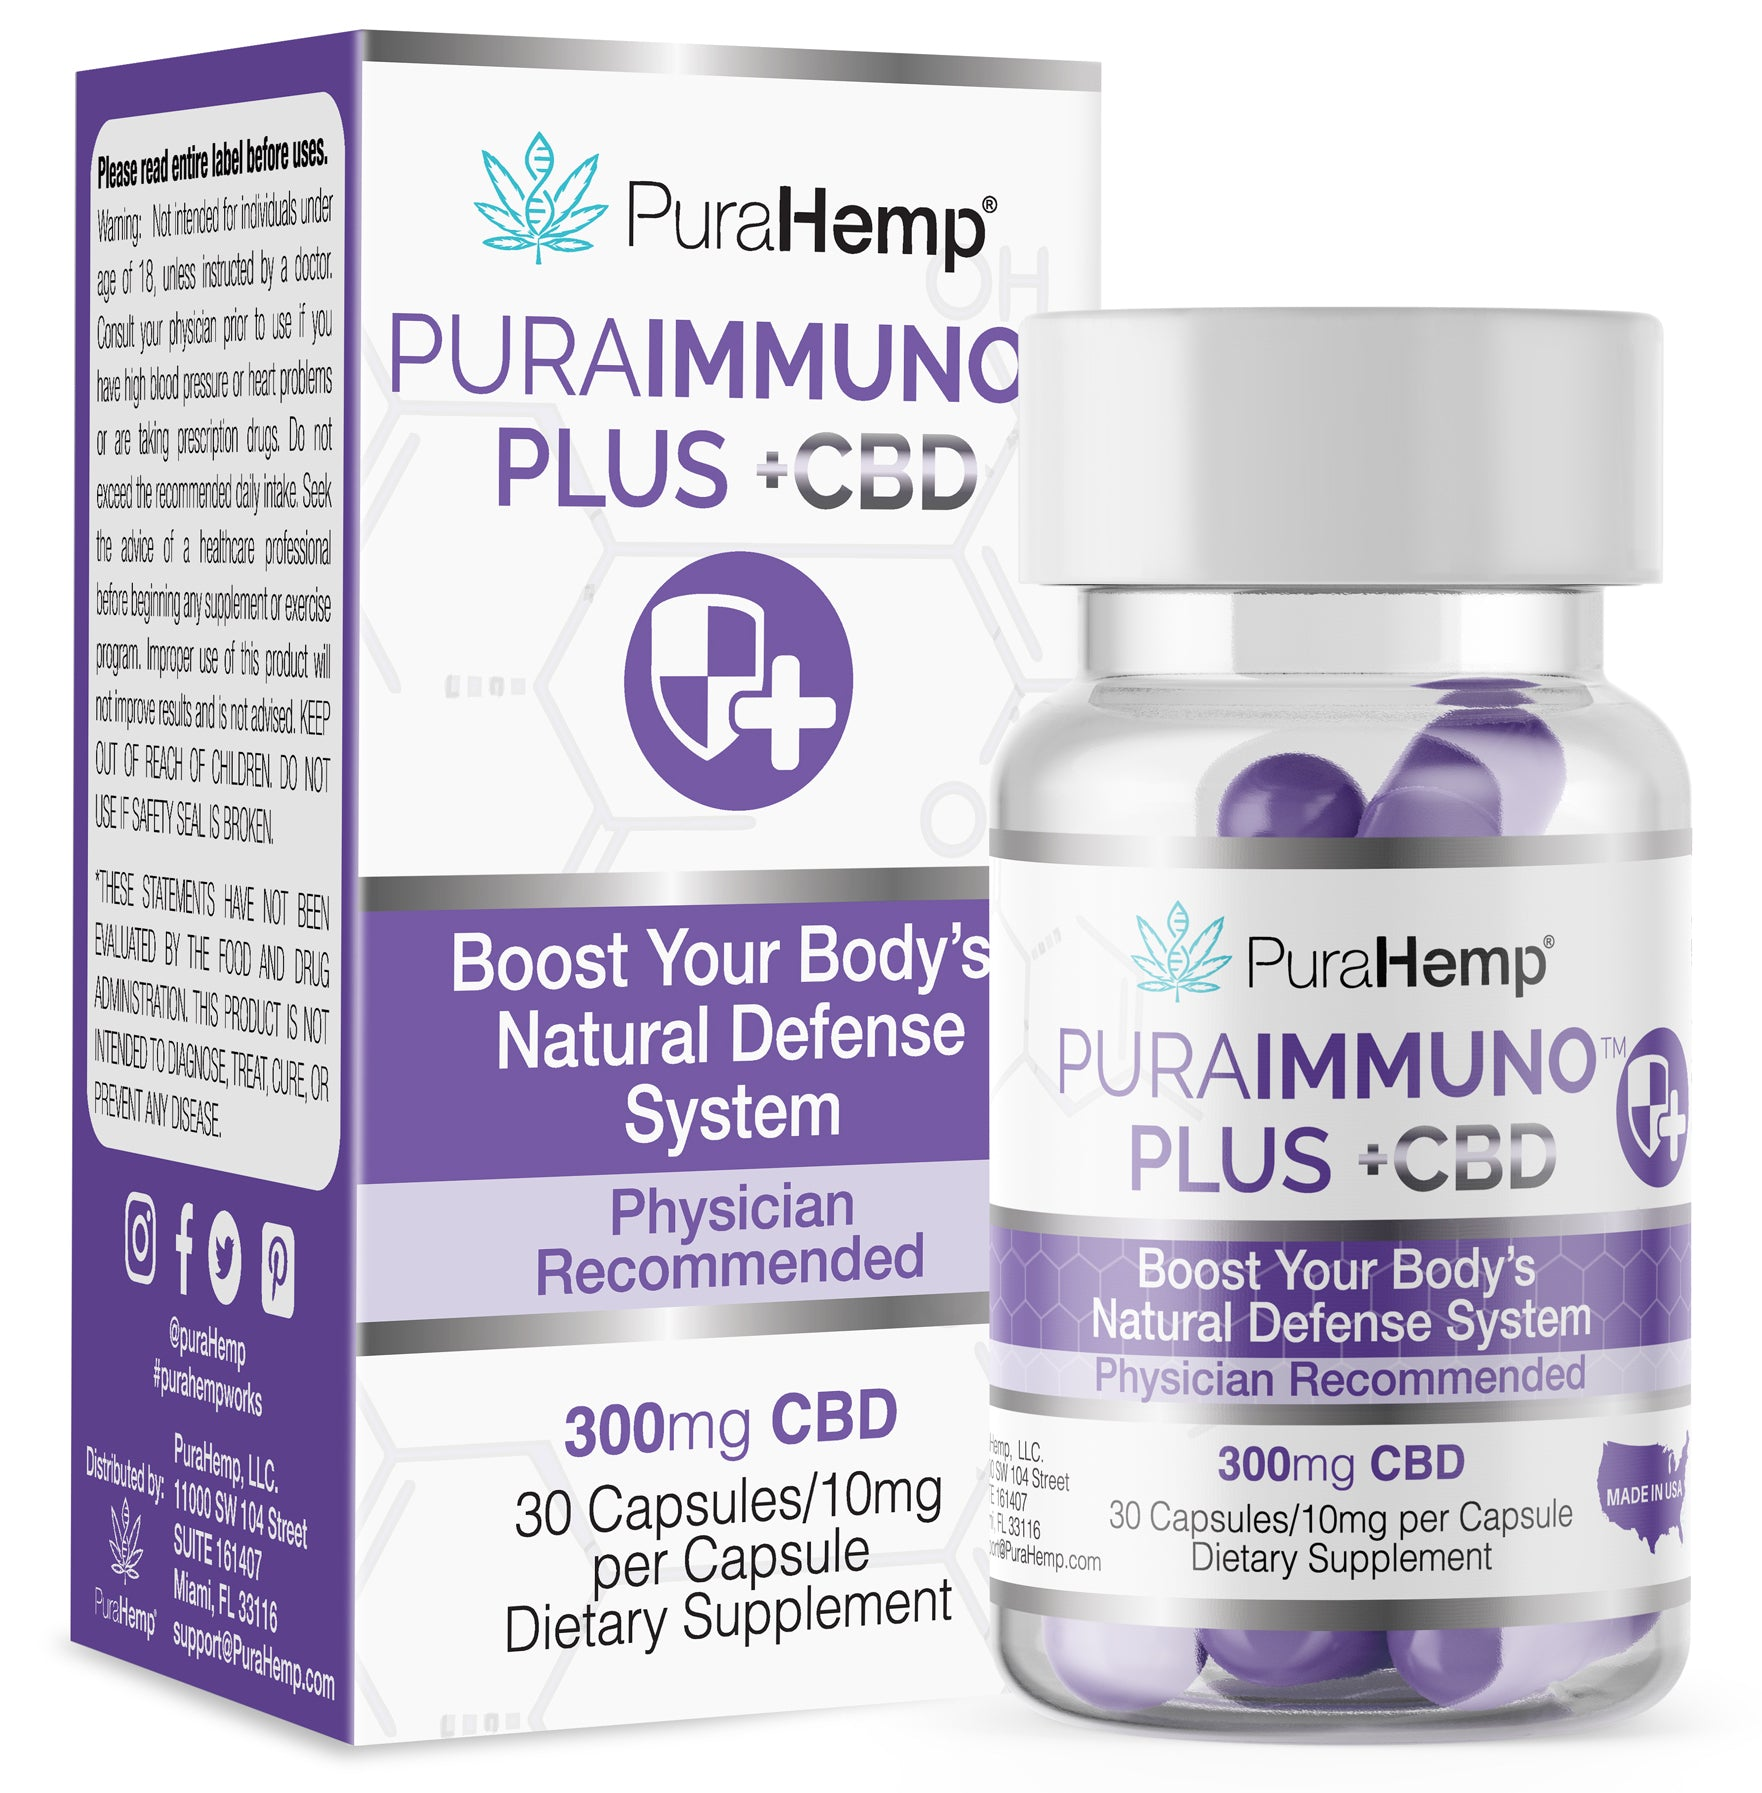 pura hemp cbd Softgels coupon code